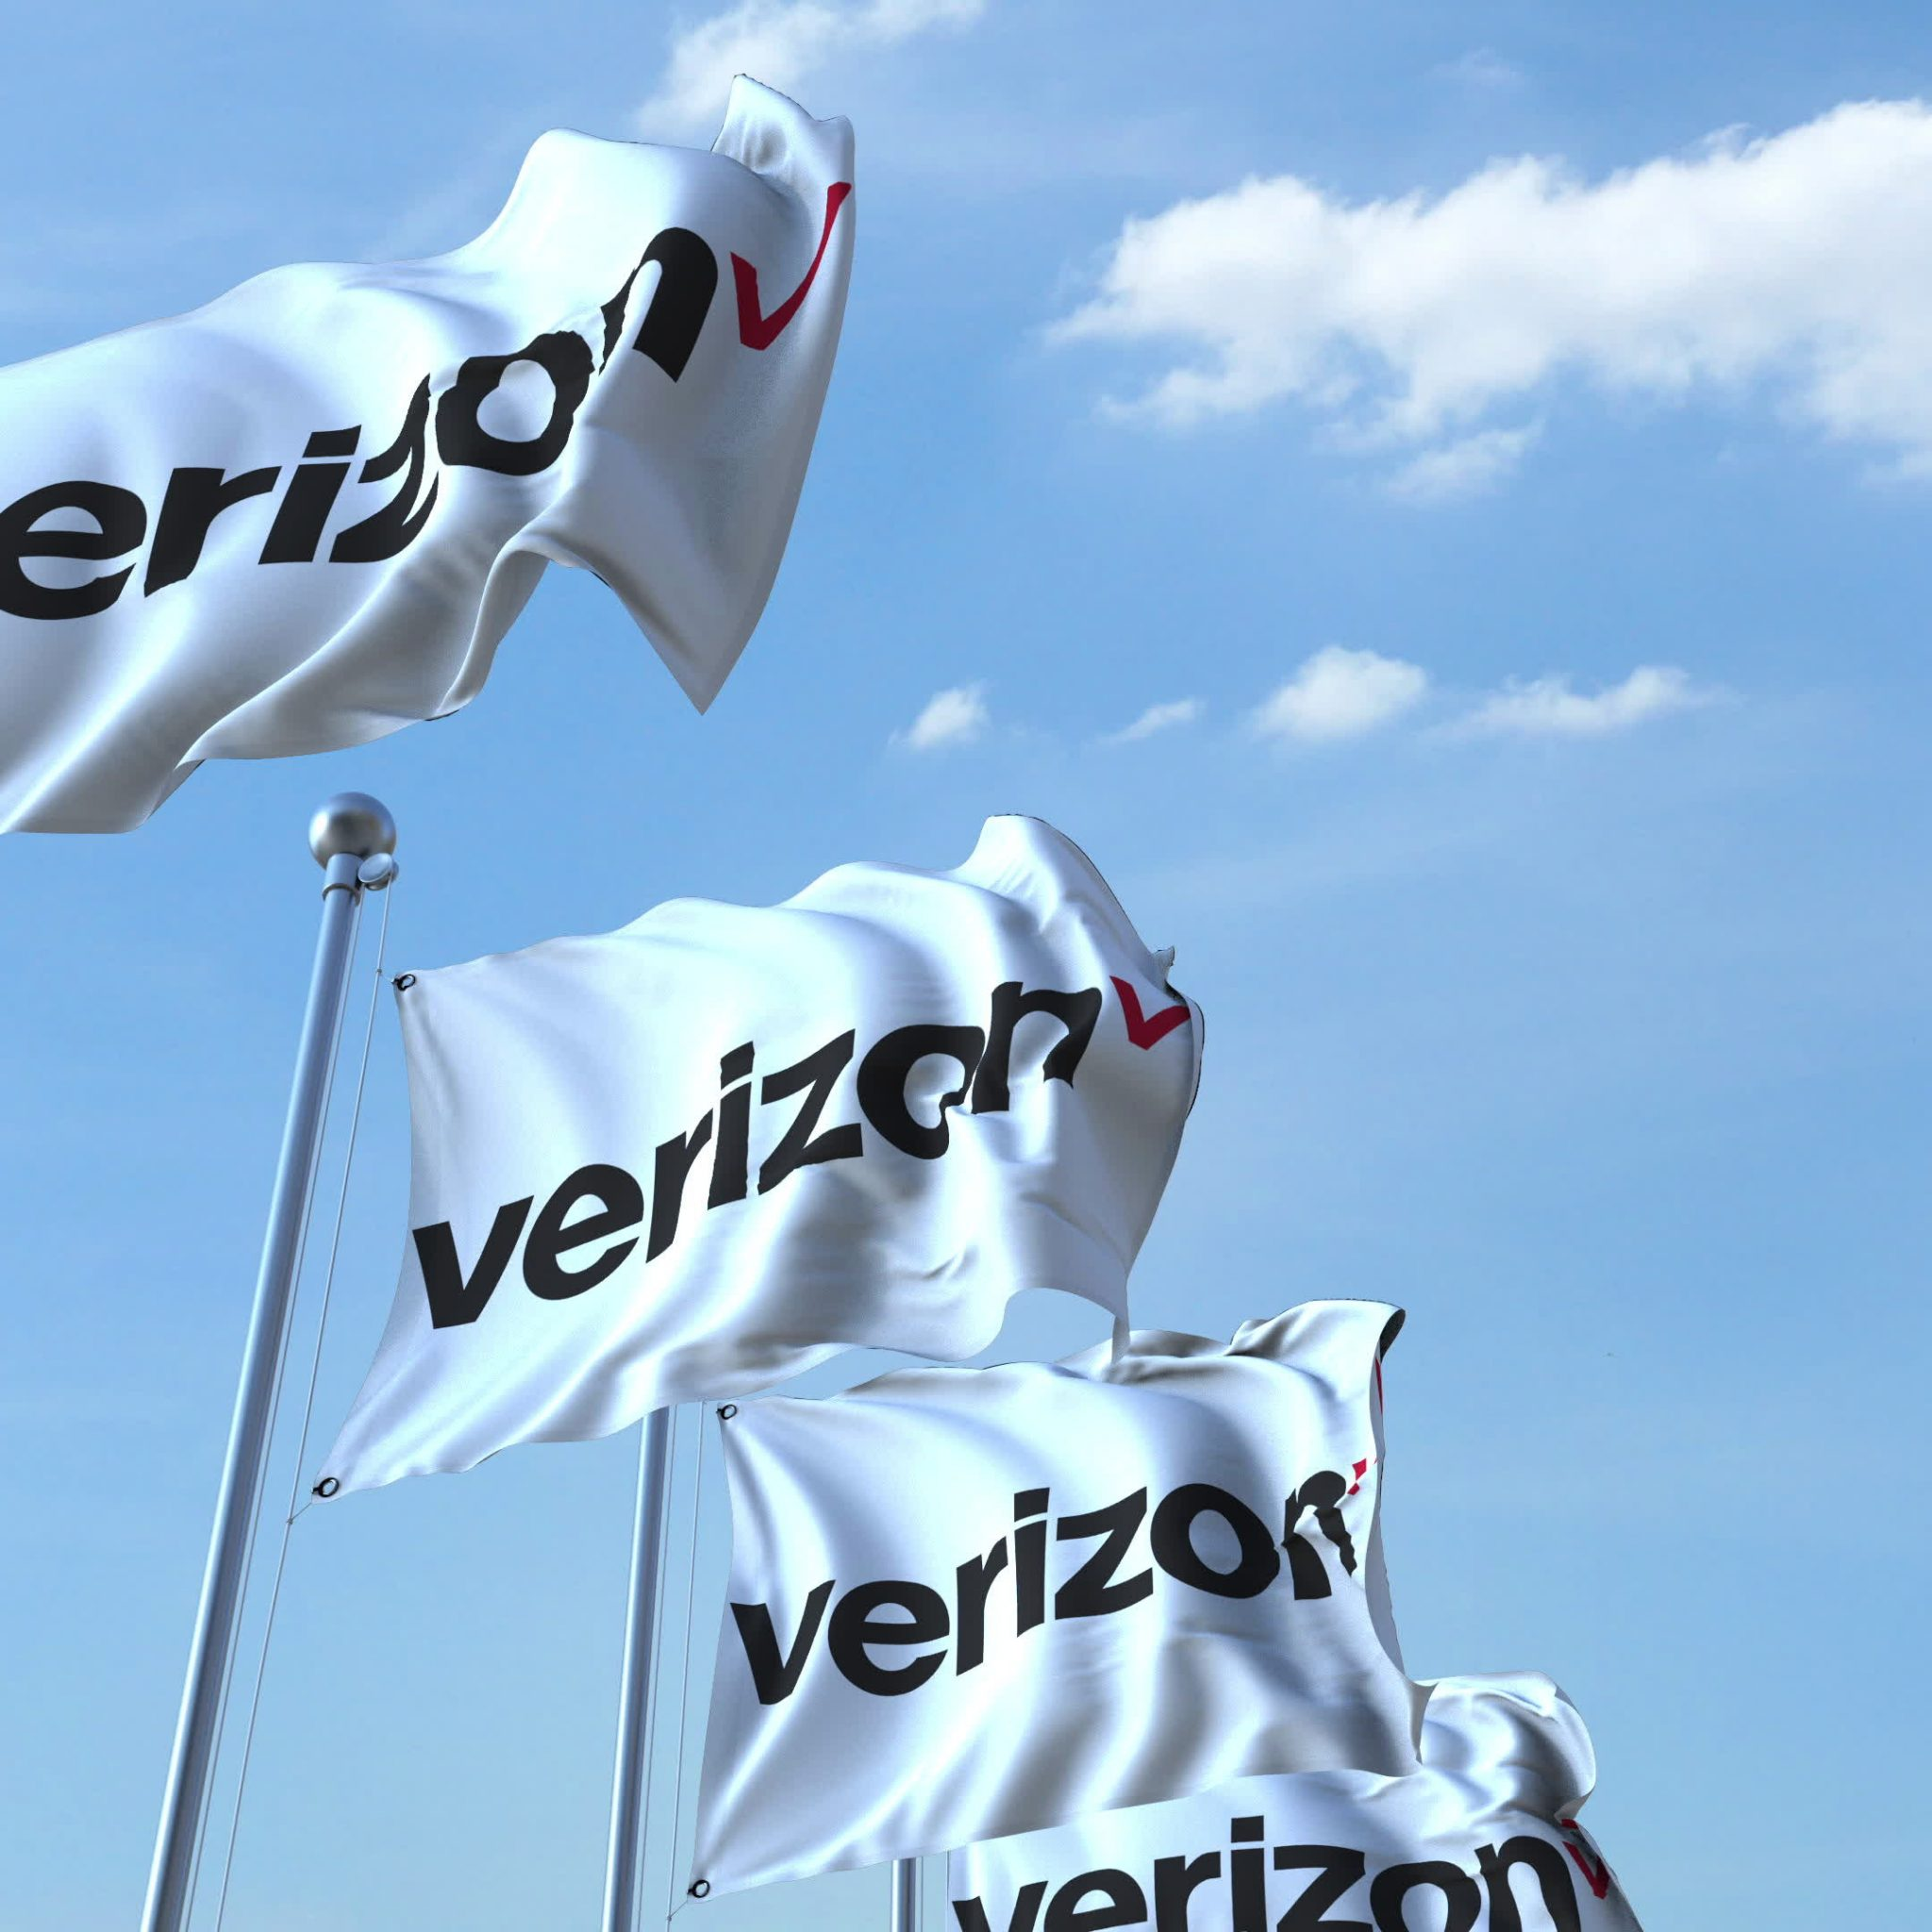 Verizon completes DSS tests, on track to activate this year